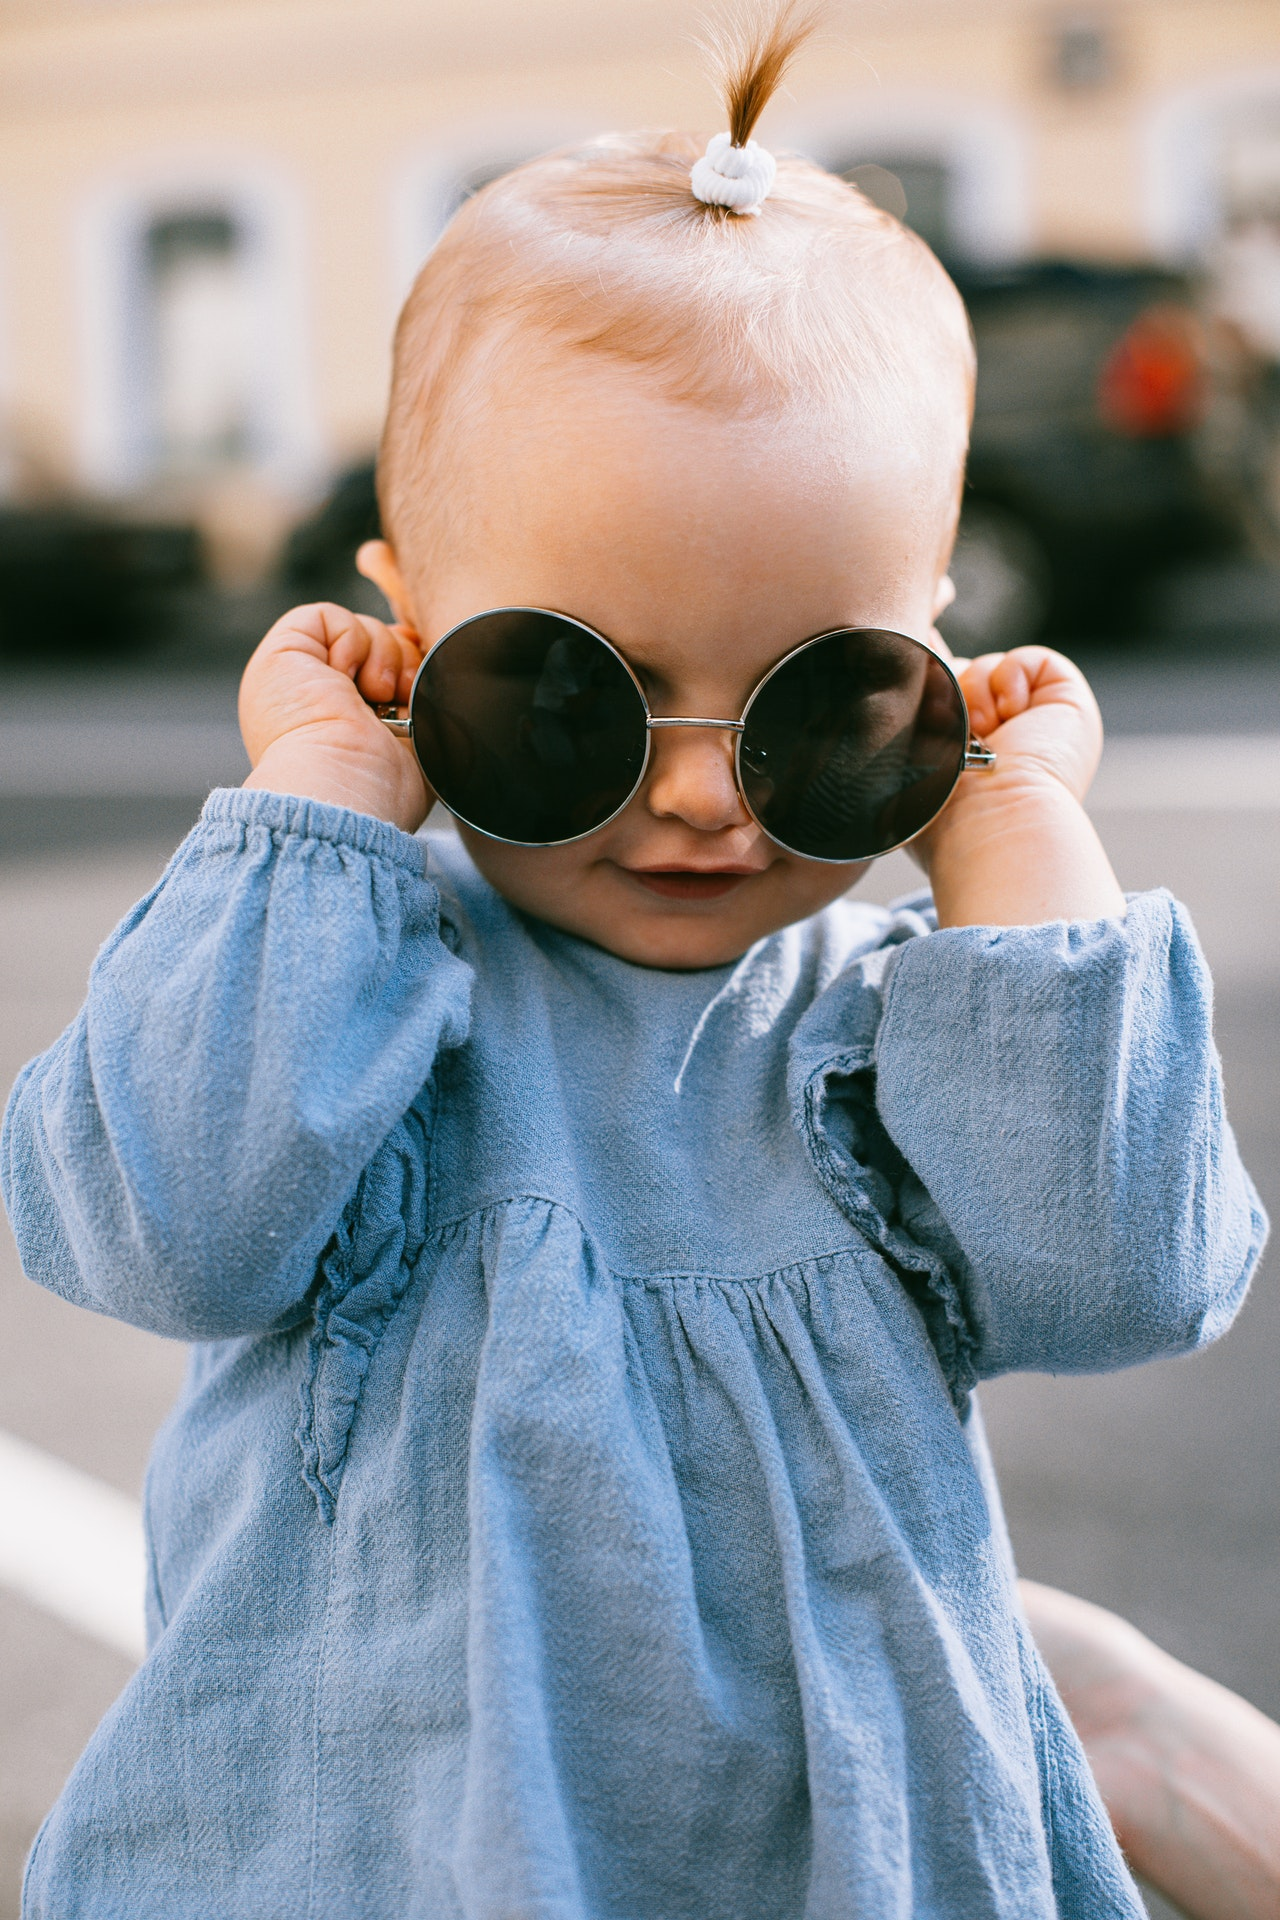 baby wearing round sunglasses